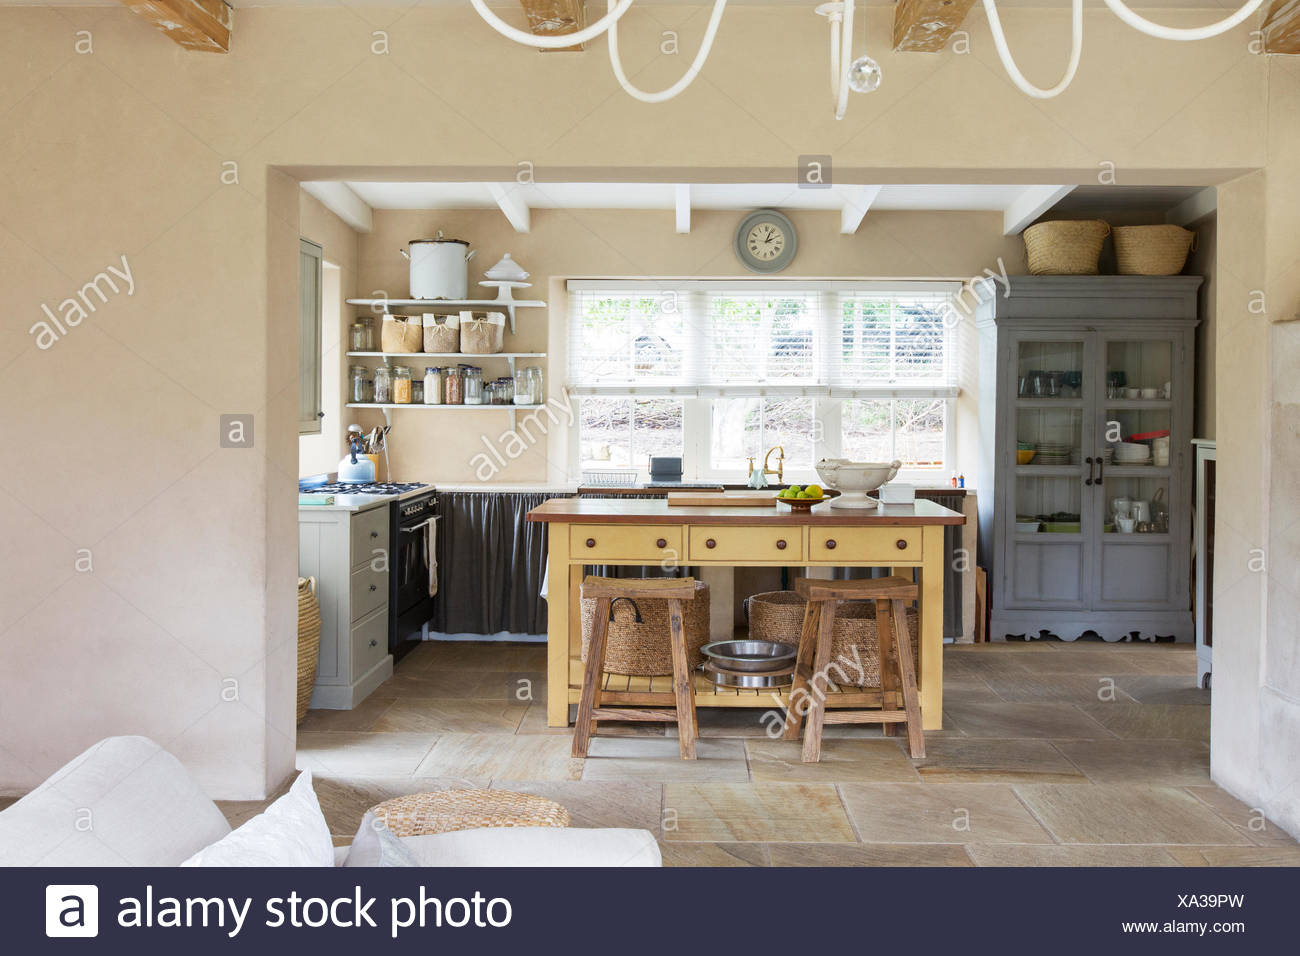 Island in kitchen of rustic house - Stock Image